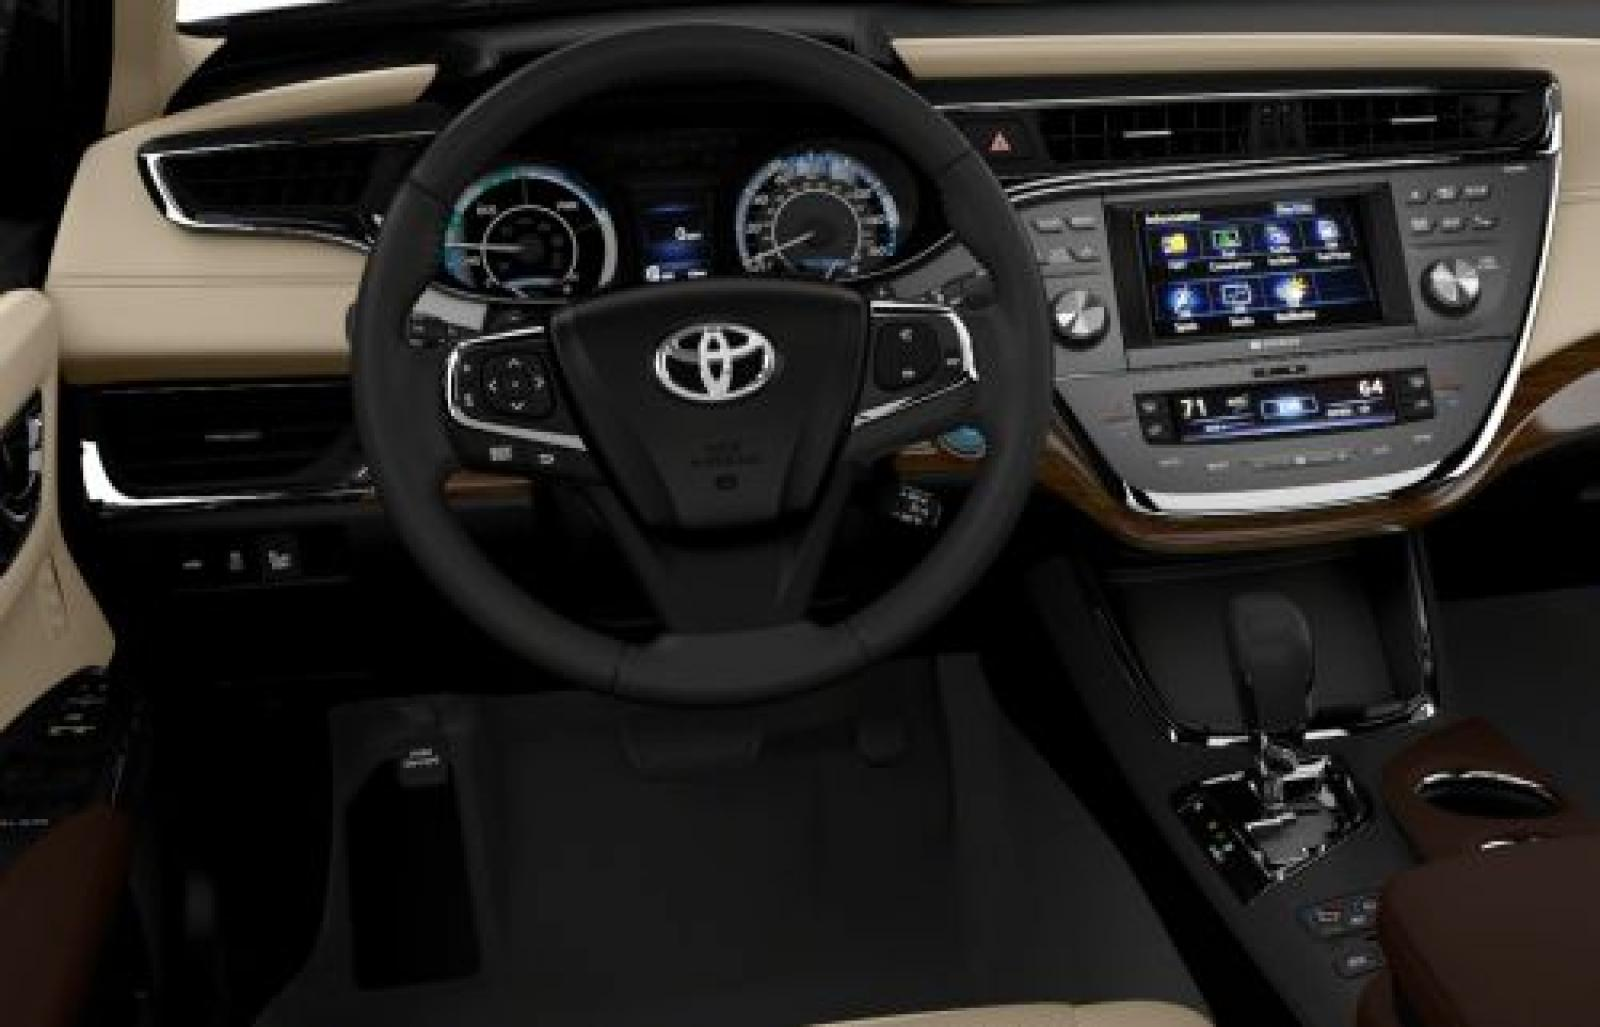 ... 2015 Toyota Avalon #9 800 1024 1280 1600 Origin ...